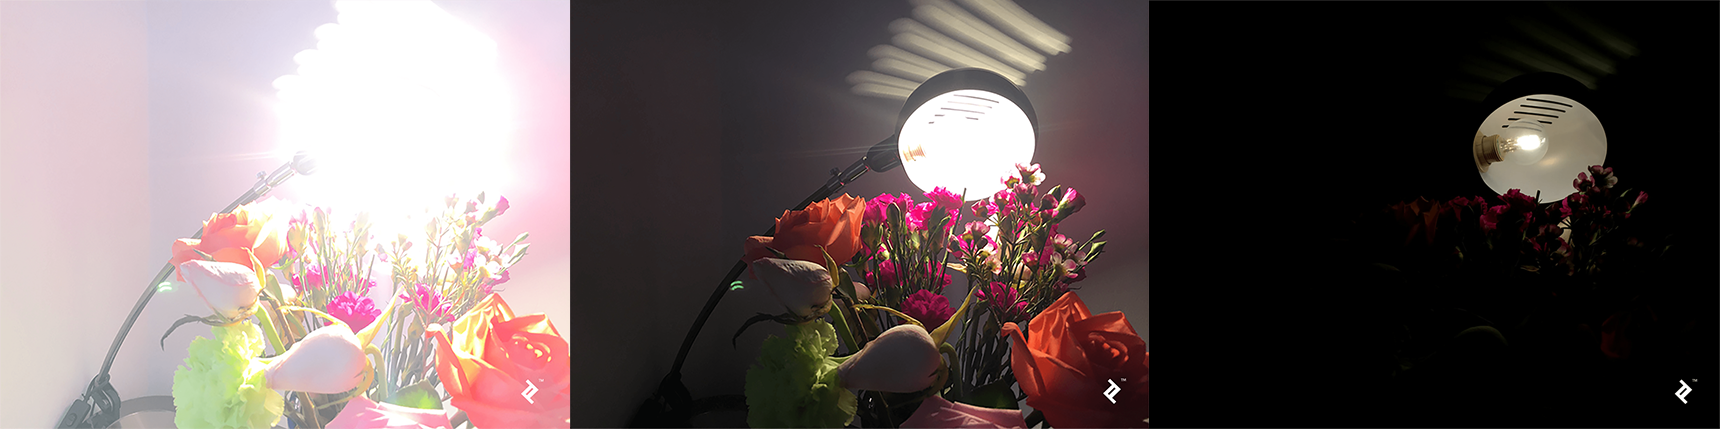 Three versions of the same image of flowers, one so dark that most of the photo is black, one normal-looking, albeit with slightly unfortunate lighting, and a third with the light cranked up so high that it's hard to see the flowers in the foreground